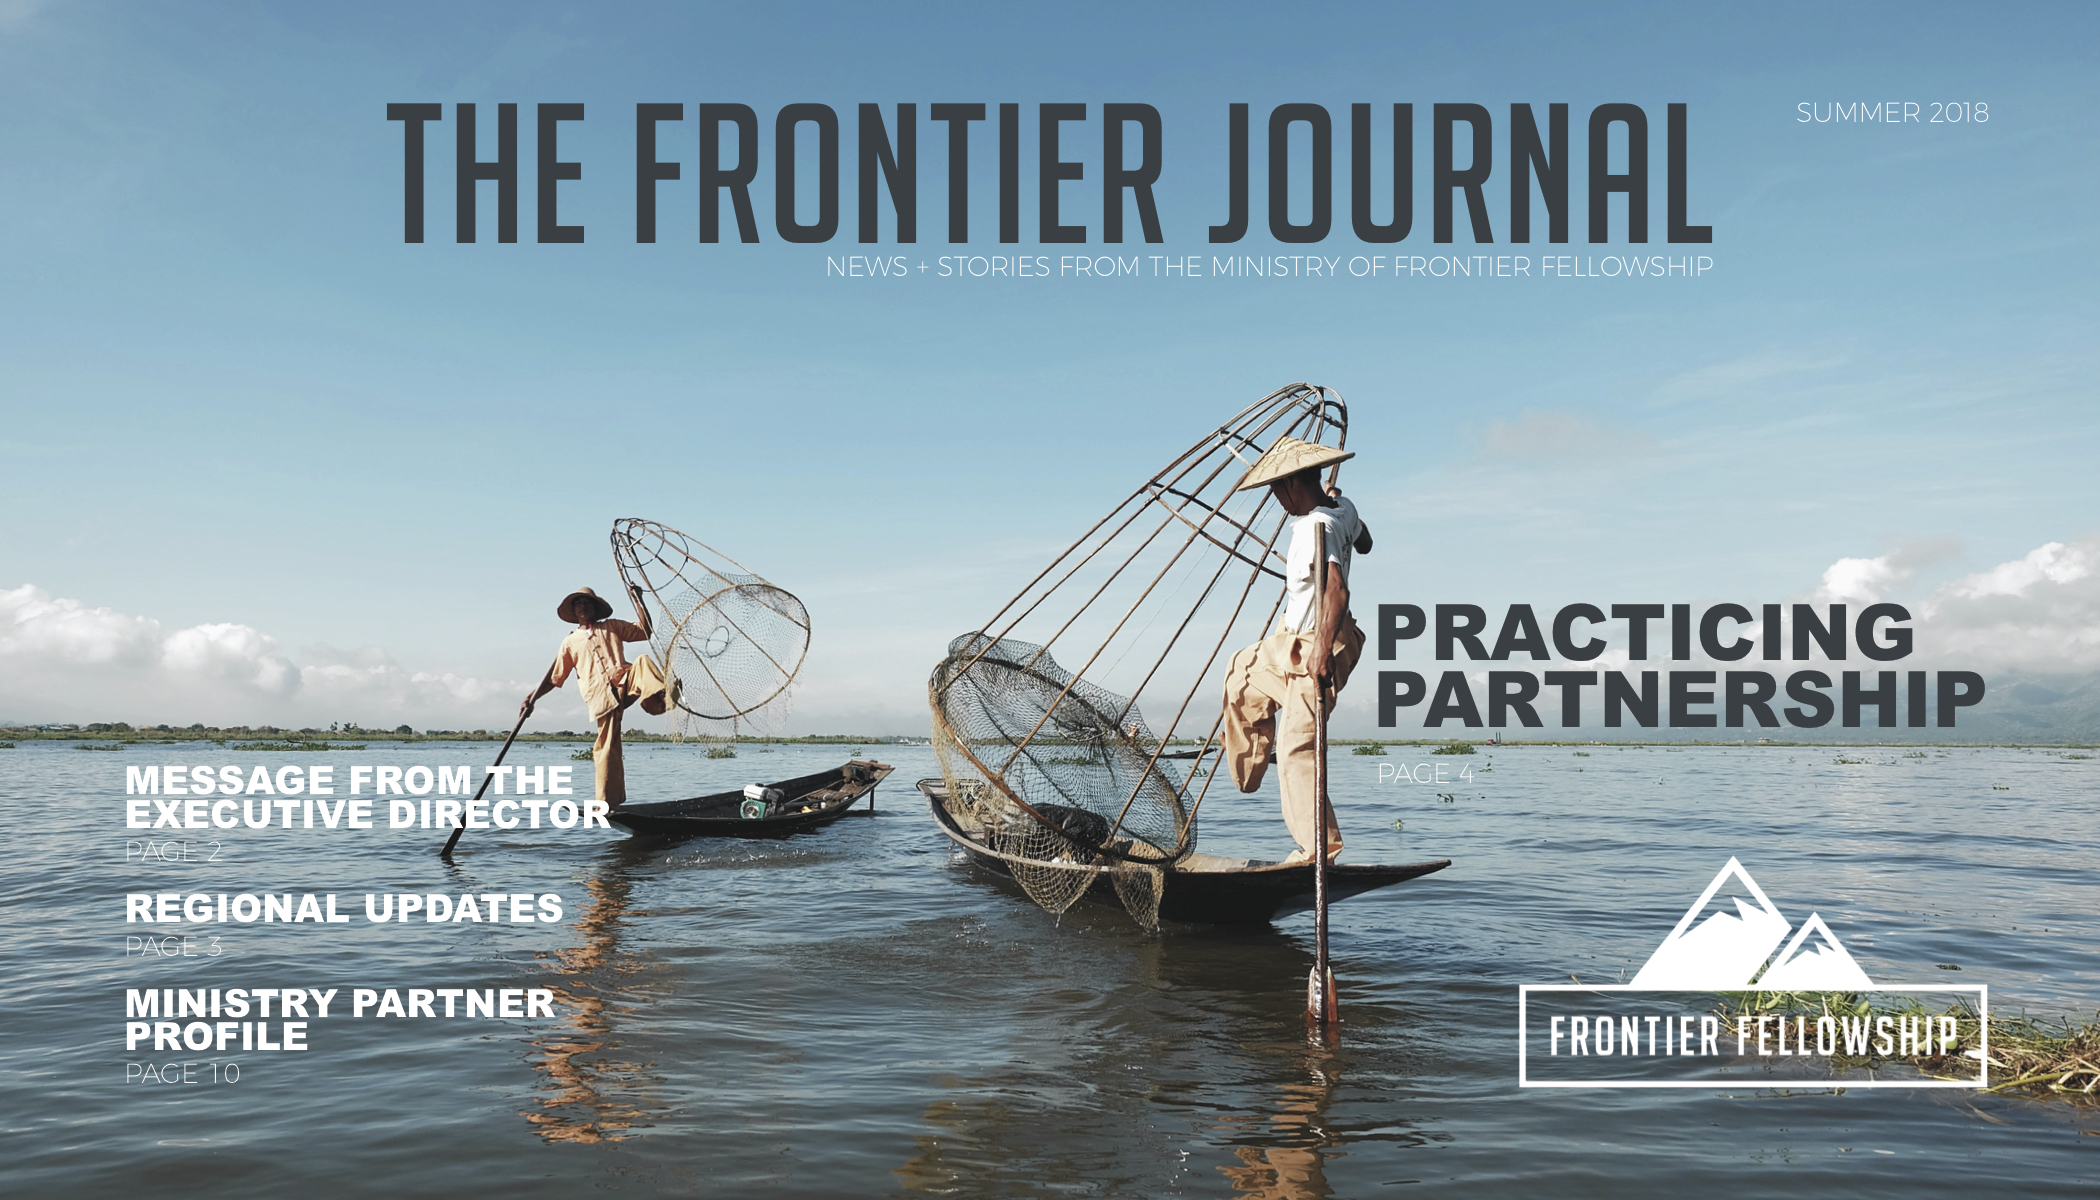 2018 Summer Frontier Journal Cover.jpg